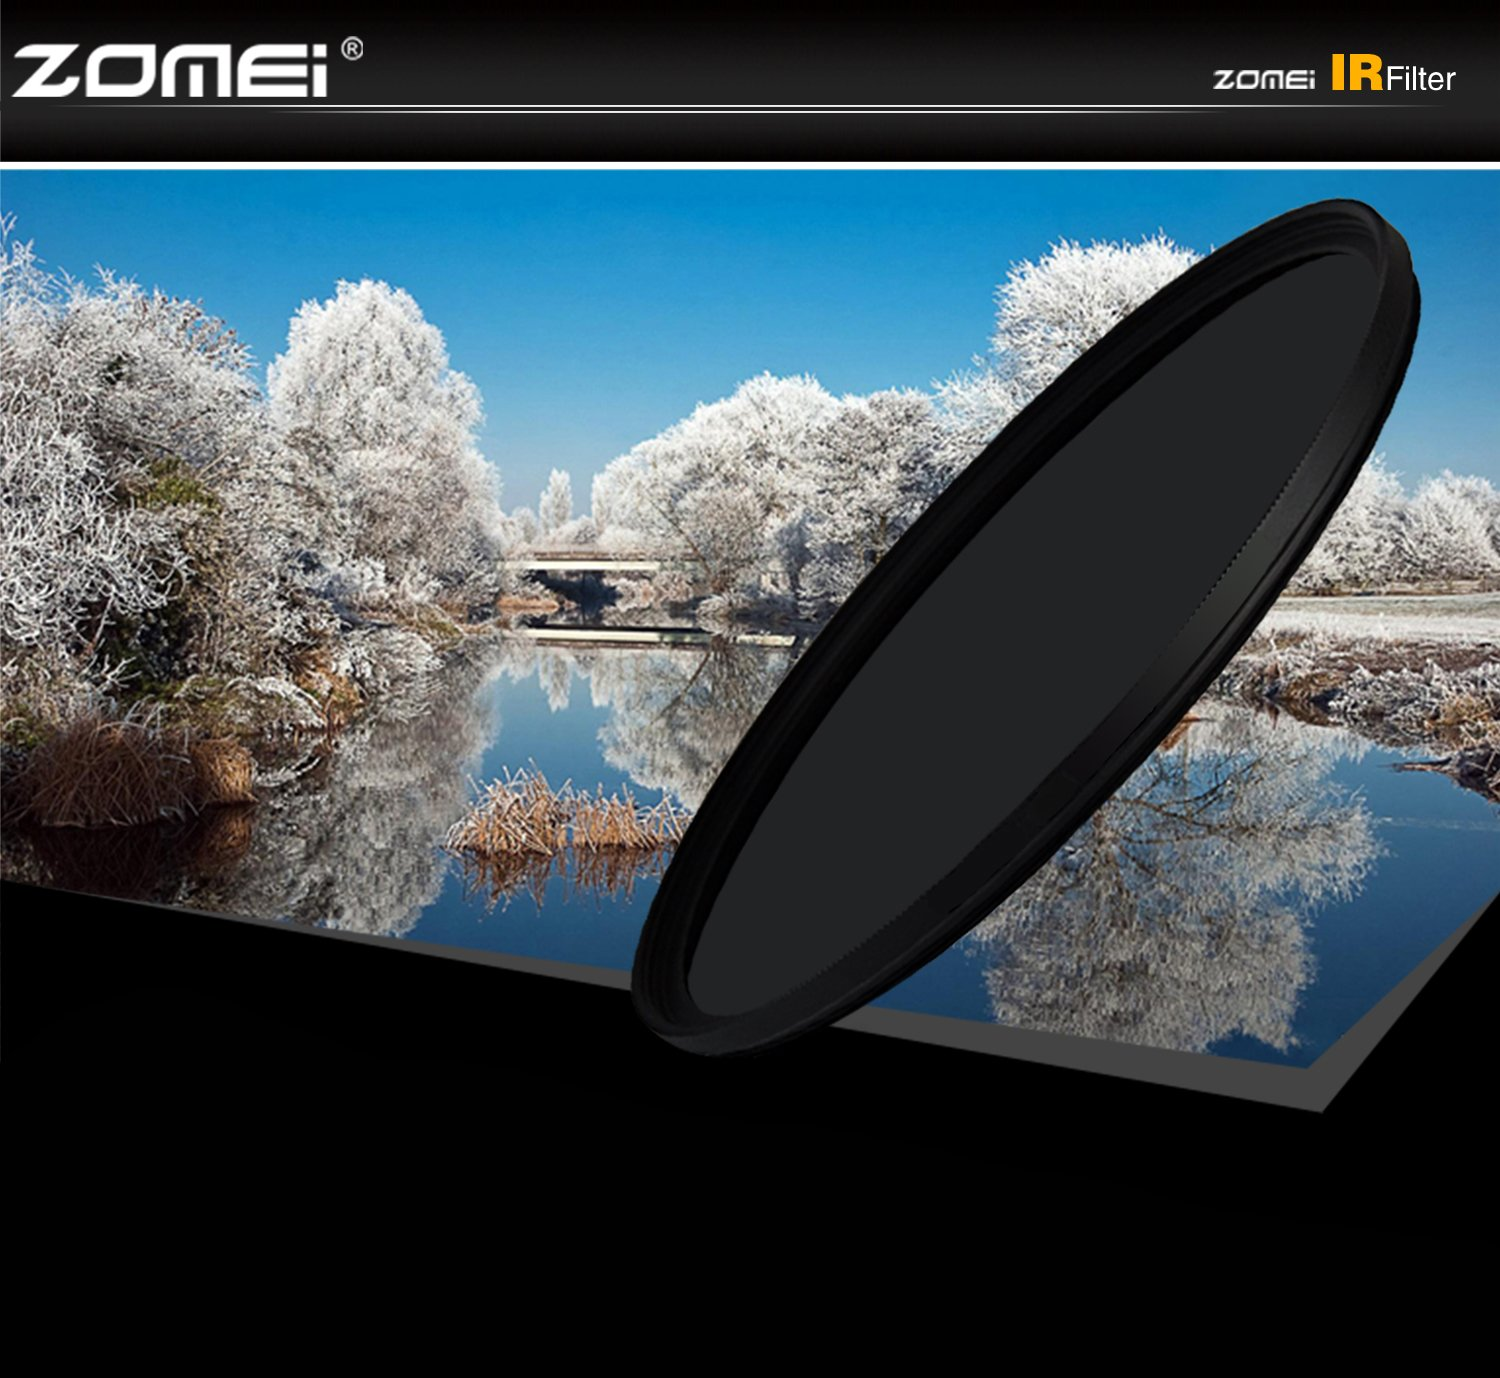 ZoMei 72MM IR 760 Glass Infrared X-Ray Filter